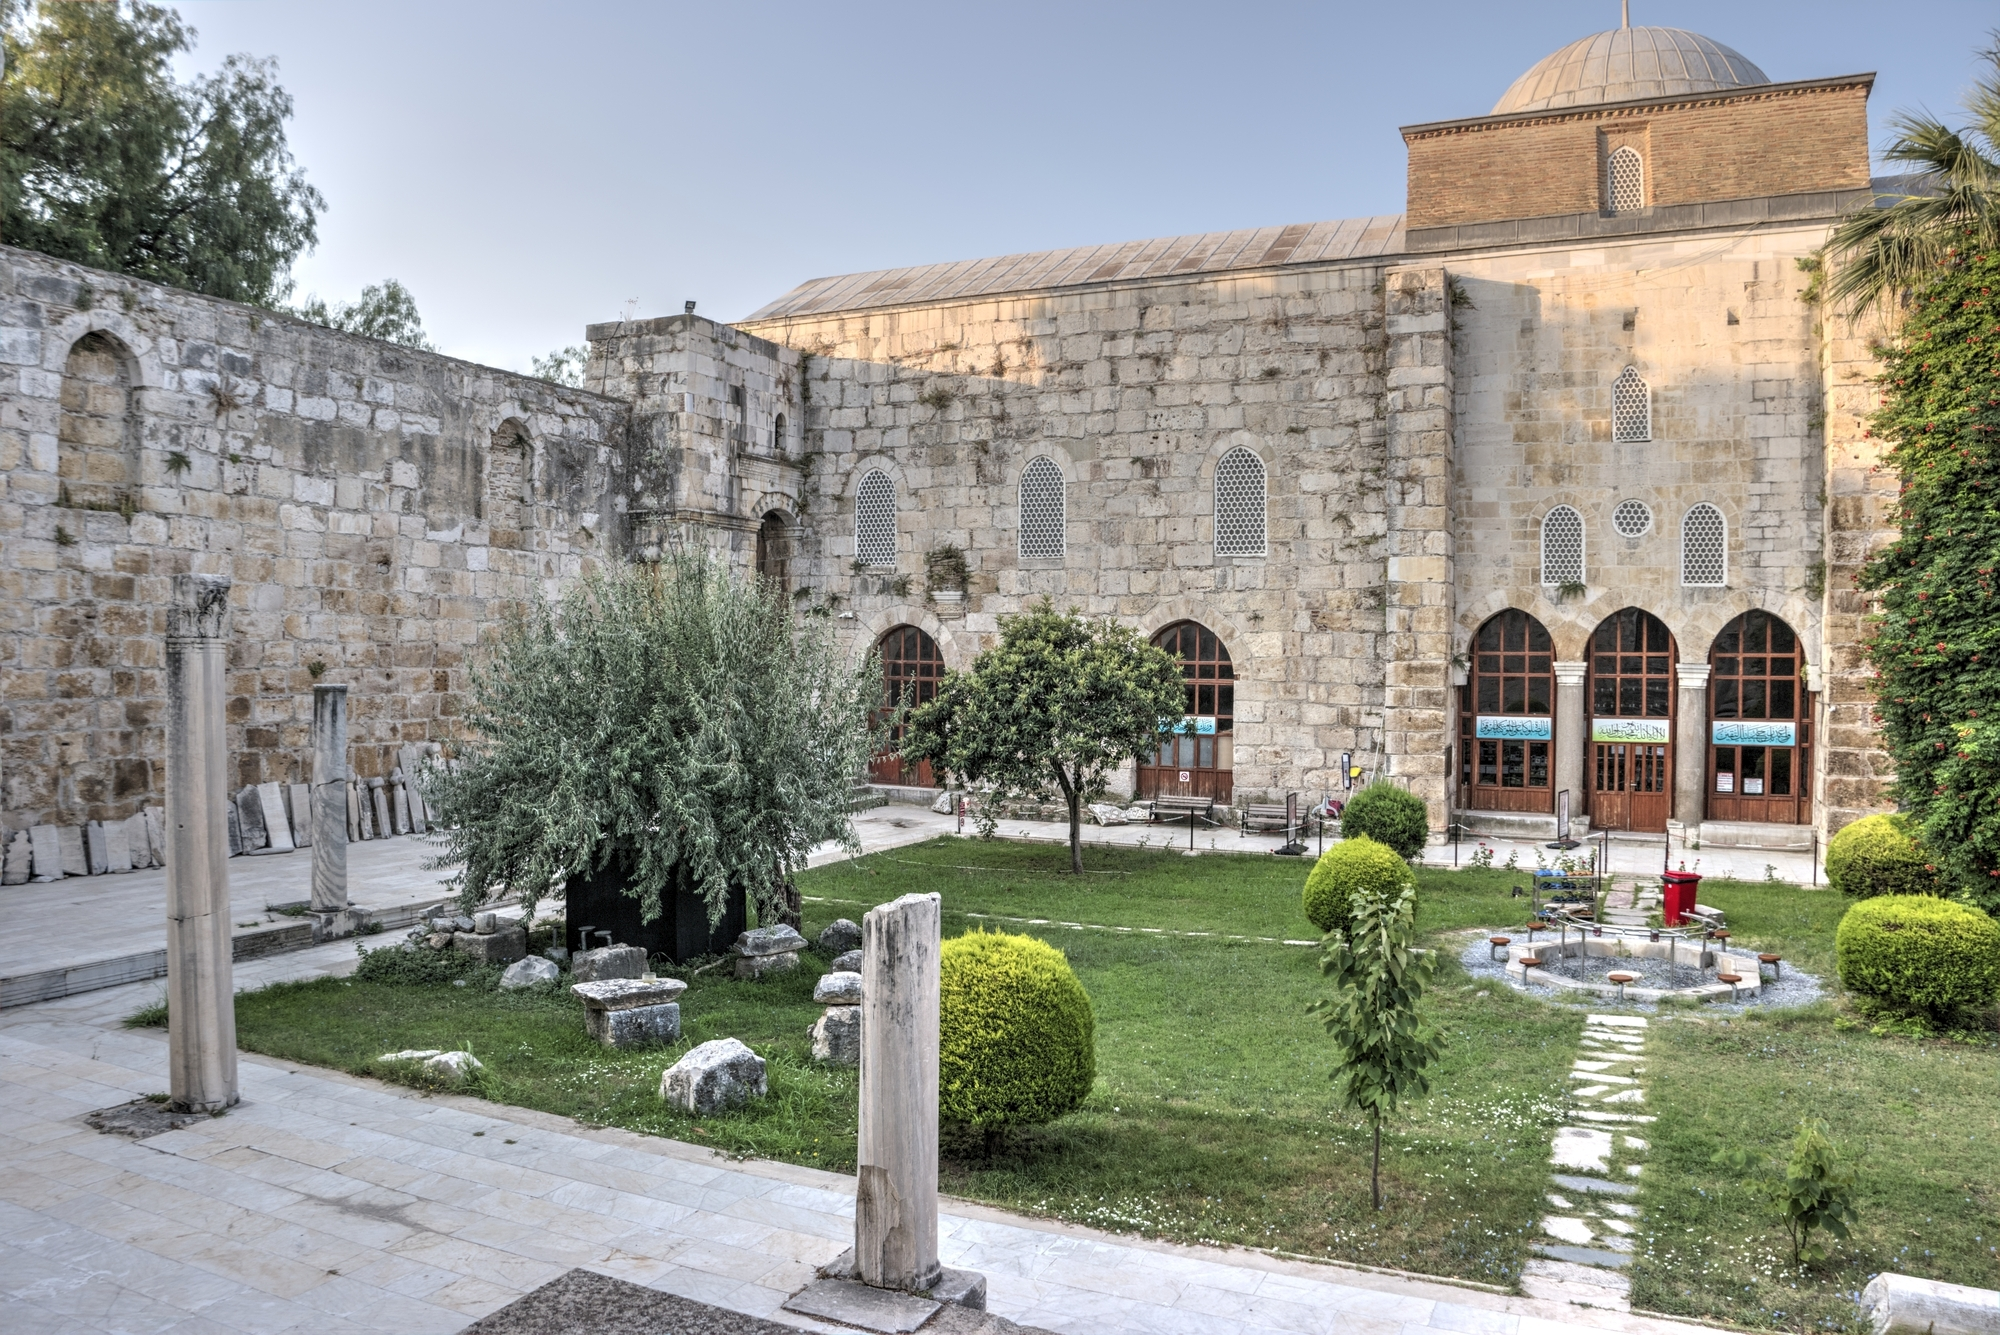 The courtyard of İsa Bey Mosque with columns and a fountain